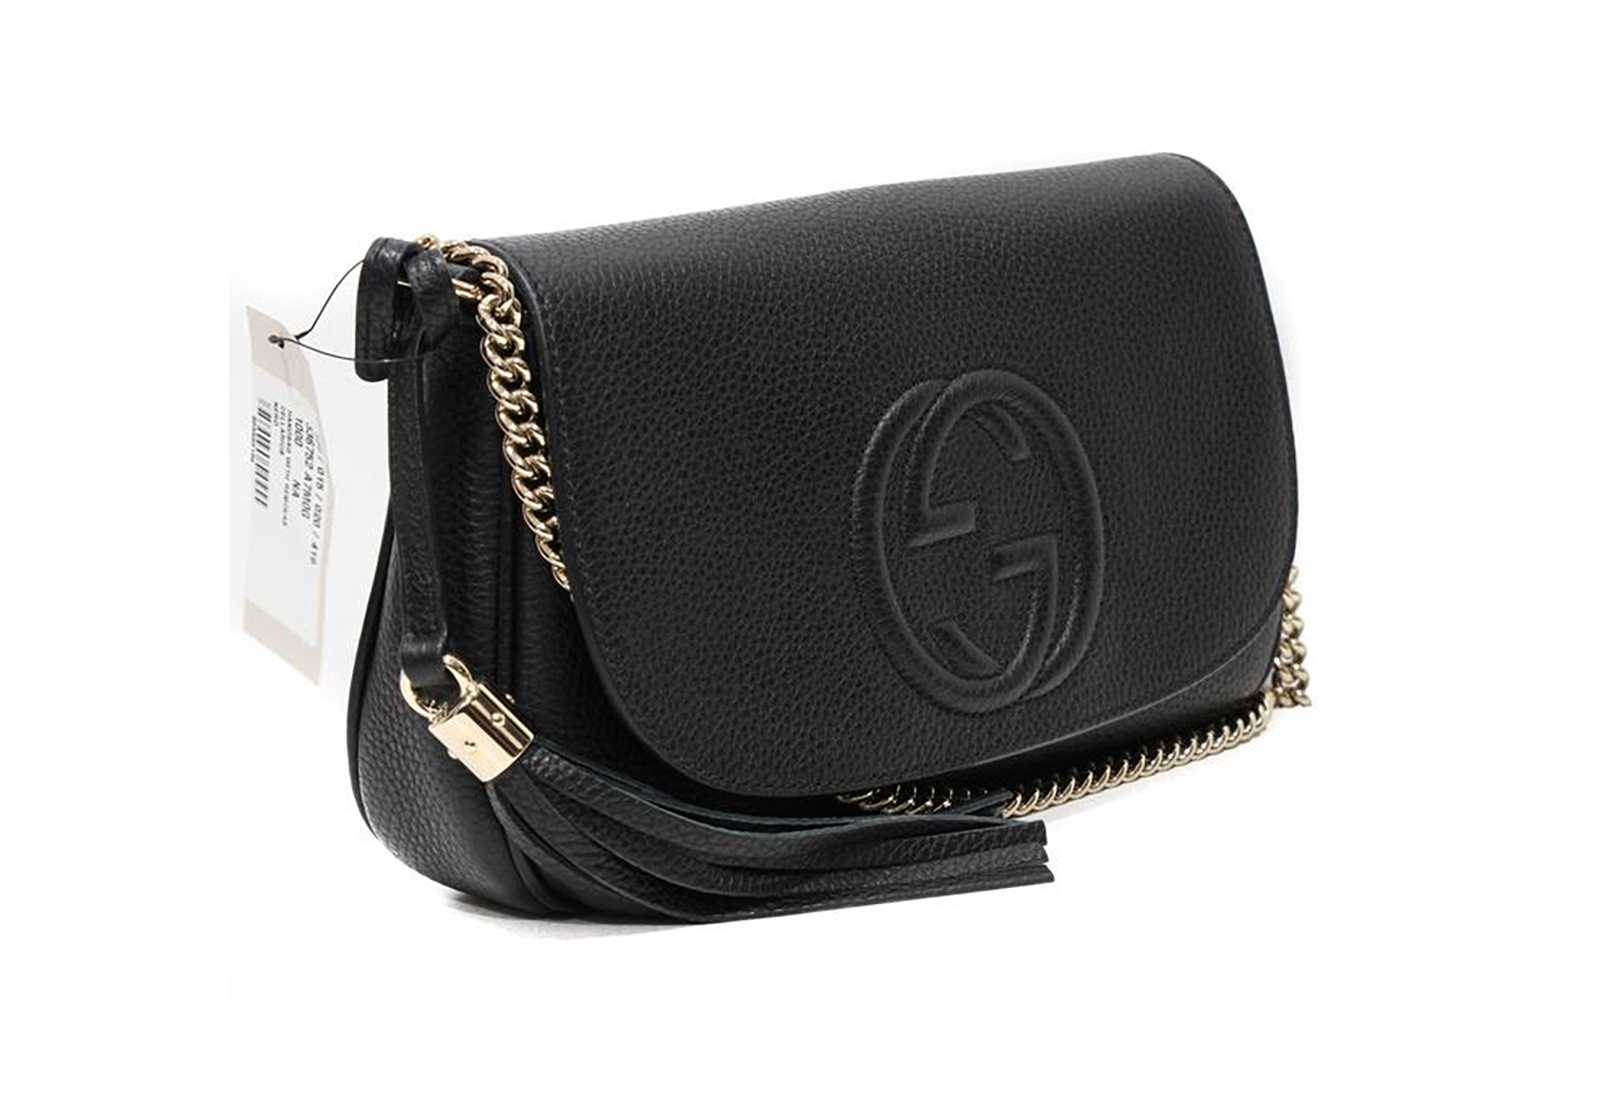 e36da70a2 How to Authenticate Gucci Handbags | LoveToKnow